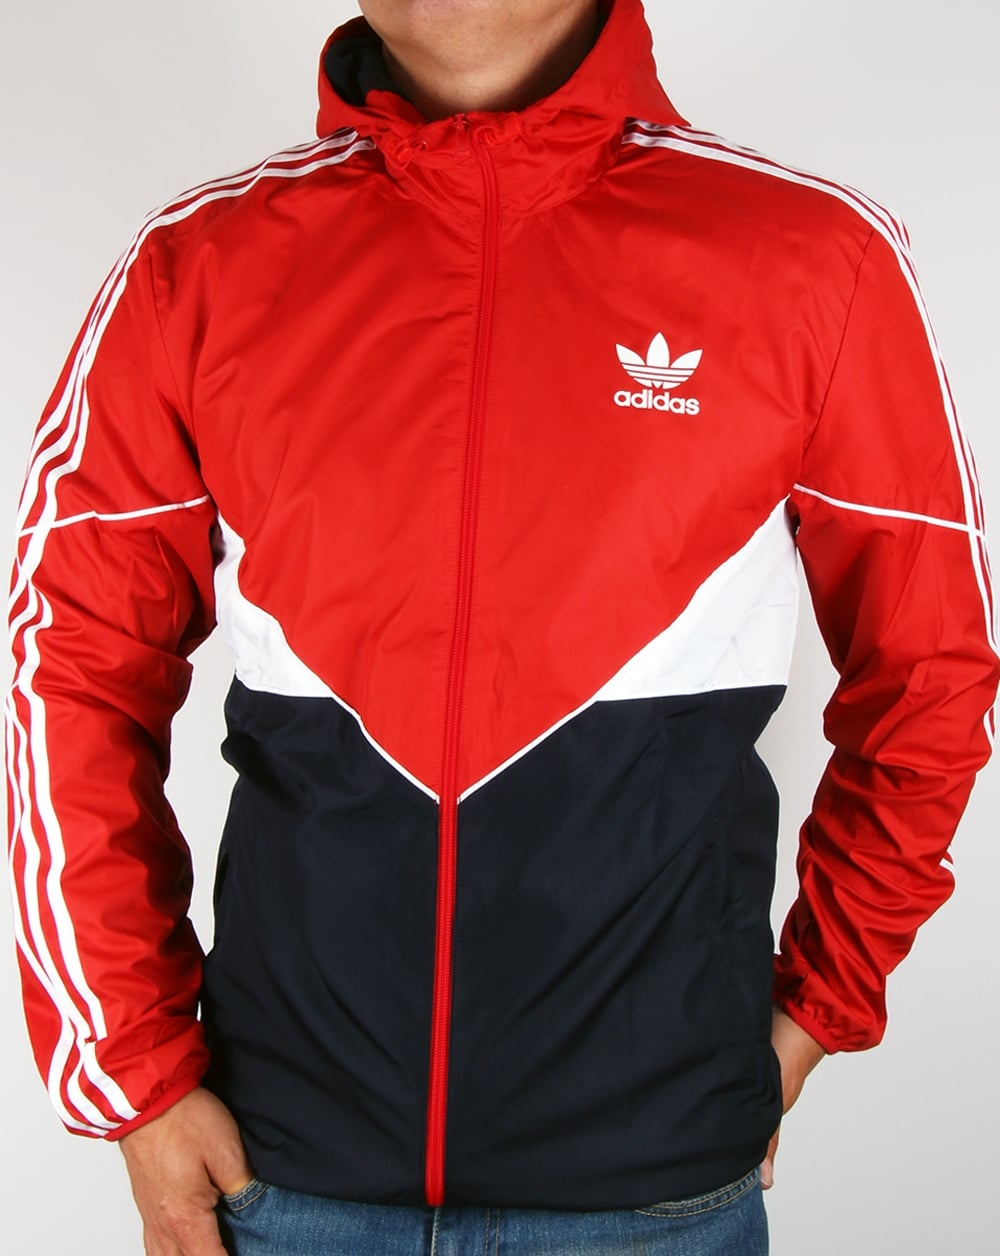 e7b8d9326 adidas Originals Adidas Originals Colorado Windbreaker Red/Navy